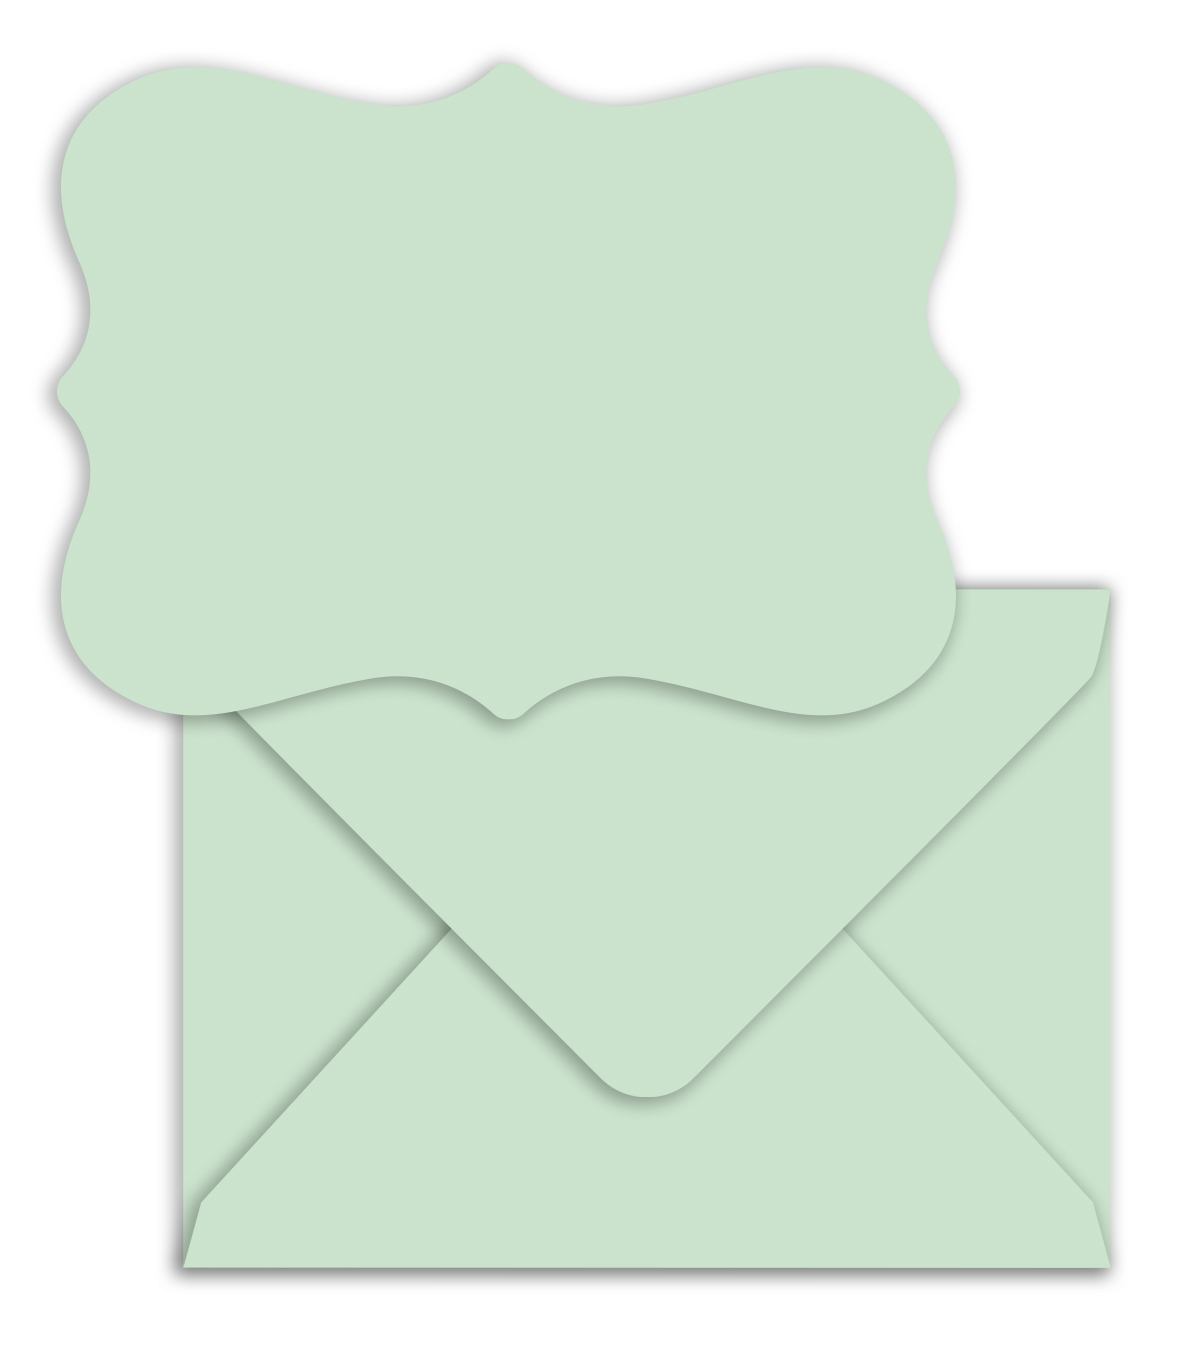 Park Lane A2 Cards & Envelopes-Light Turquoise